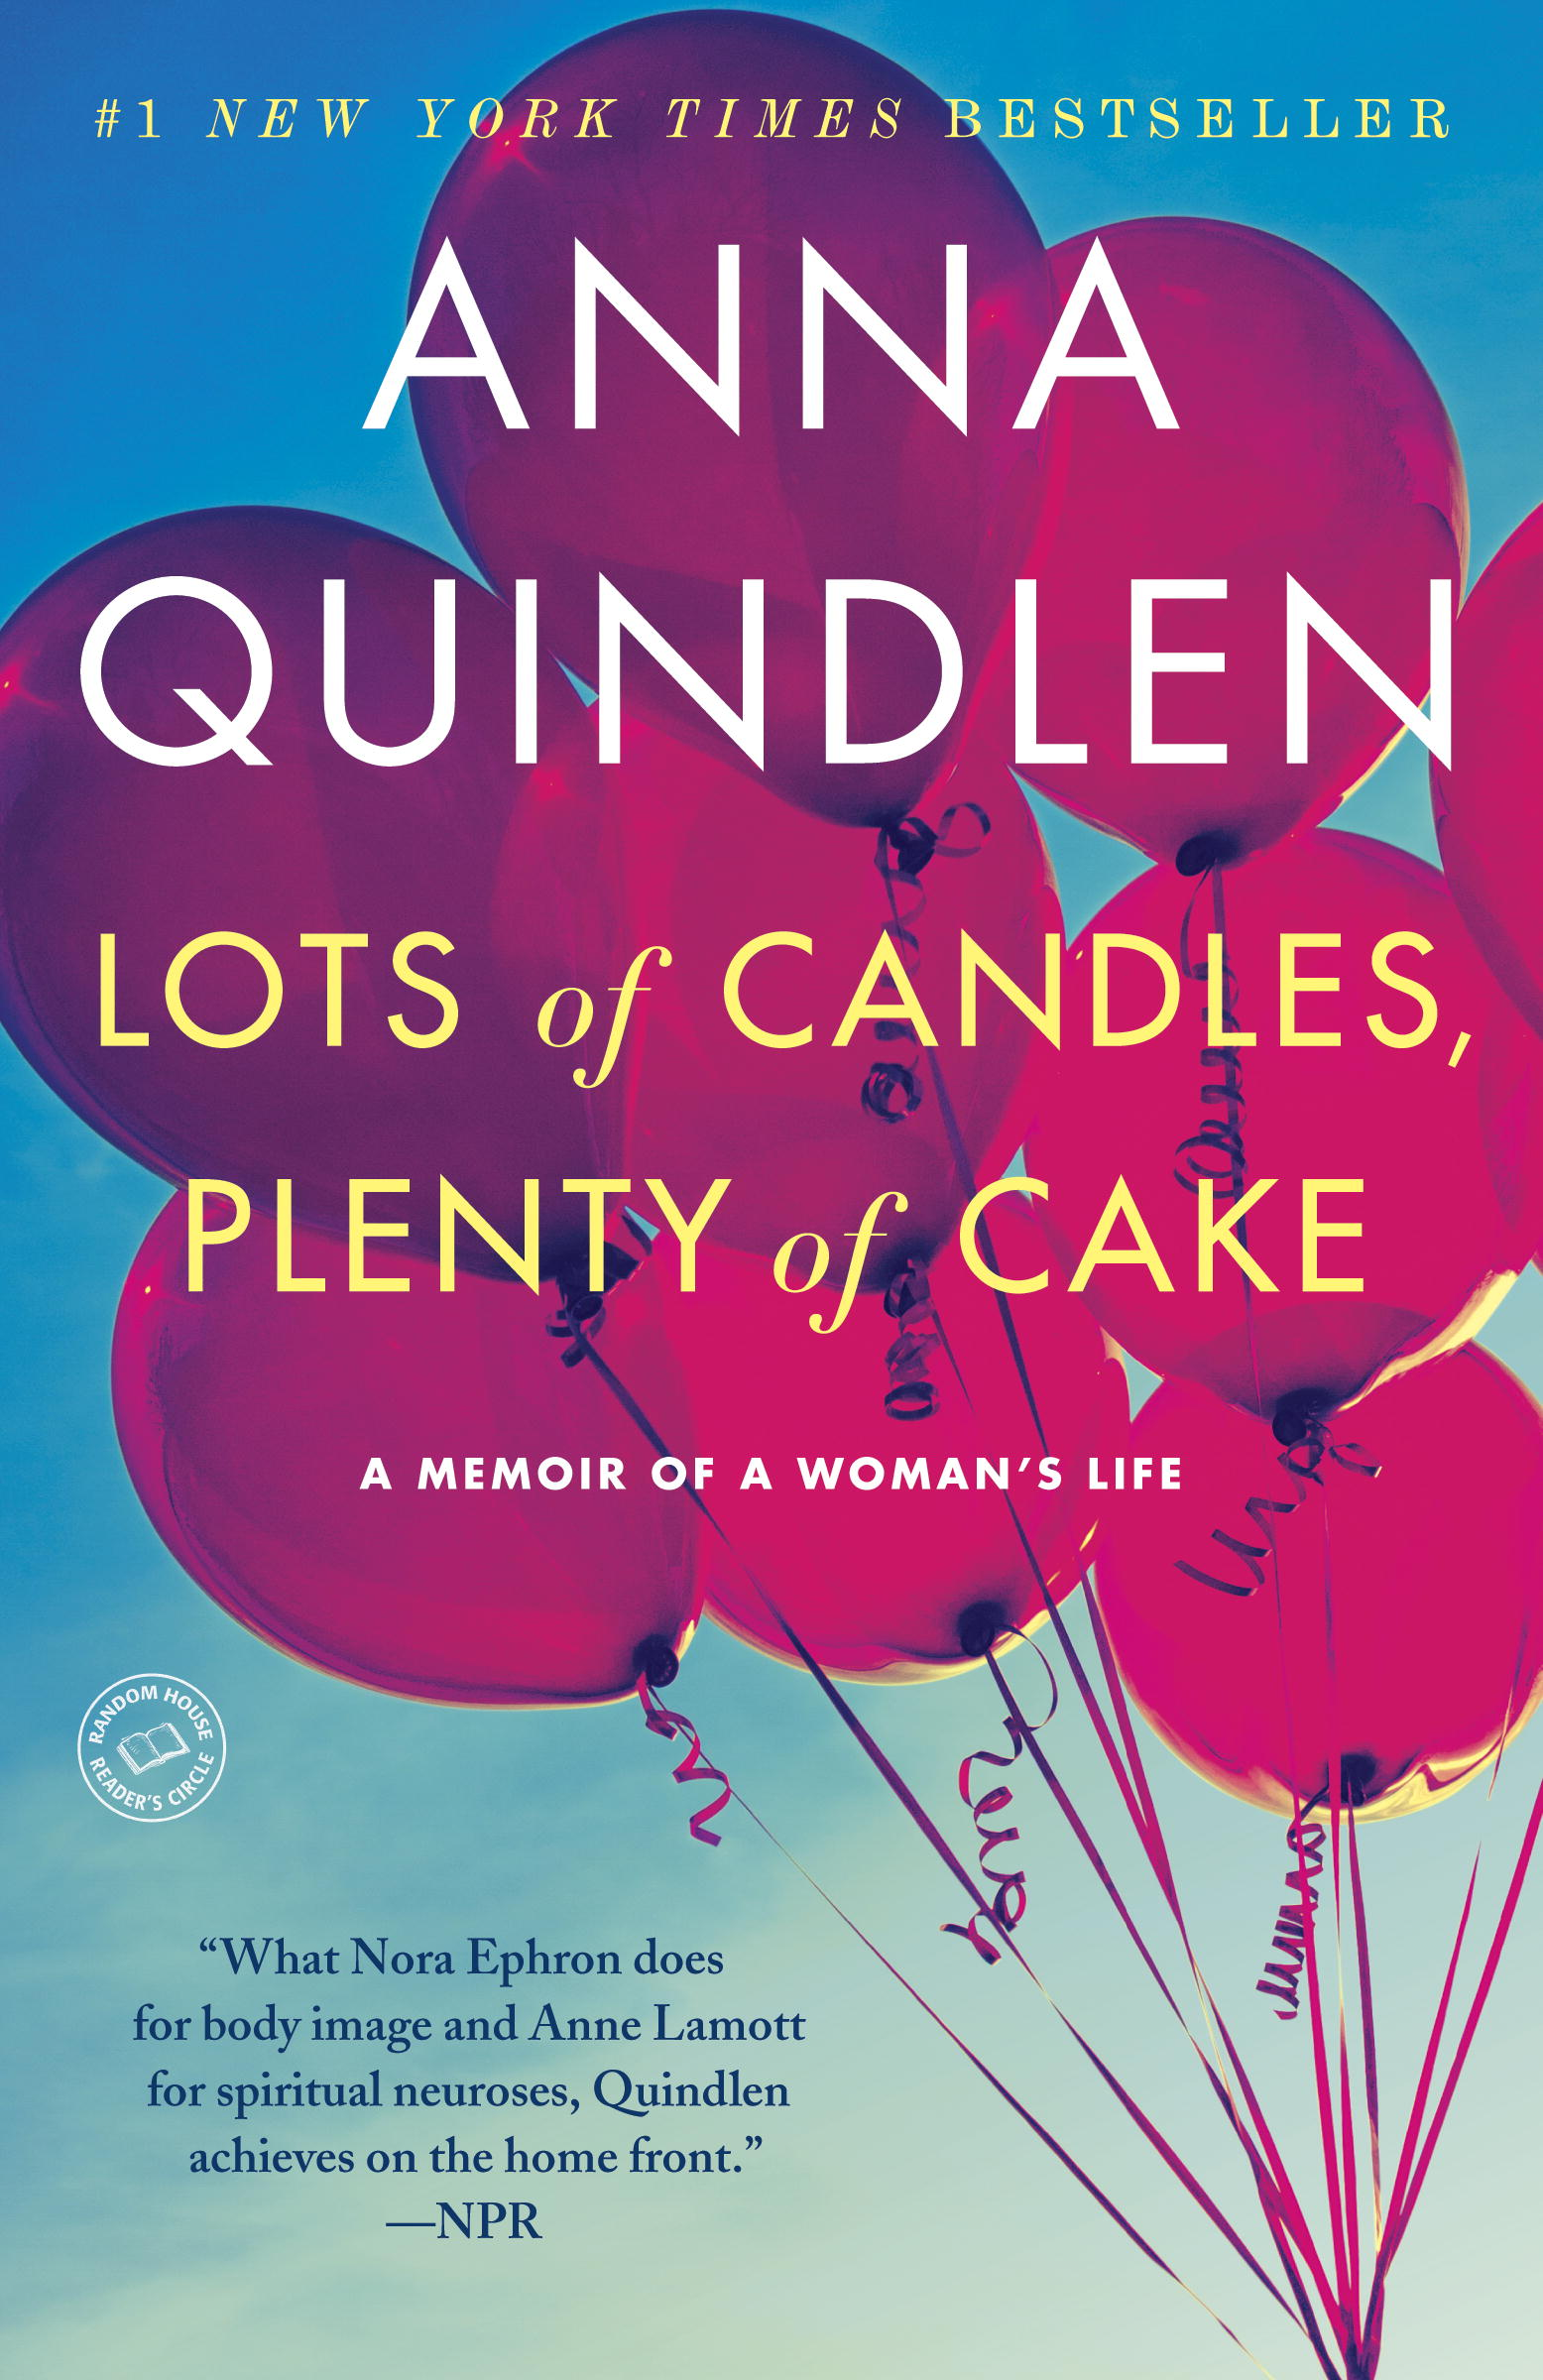 Quindlen_Lots-of-Candles-Plenty-of-Cake.jpg